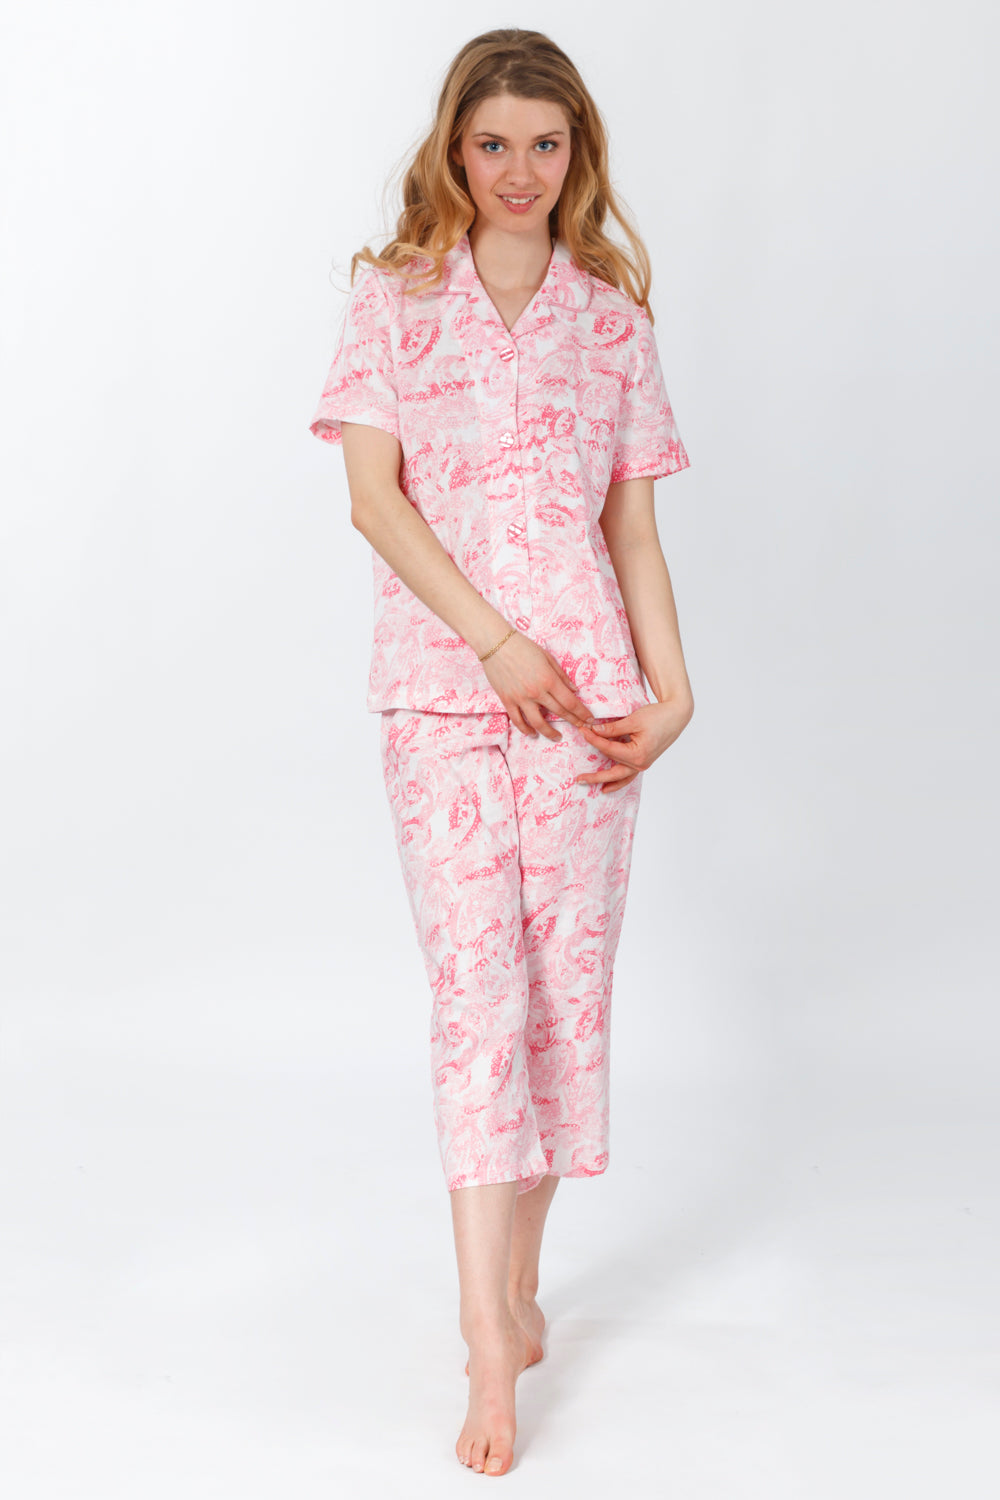 Paisley Print 100% Cotton Pajama Set - White/Pink - CozyAndCurious